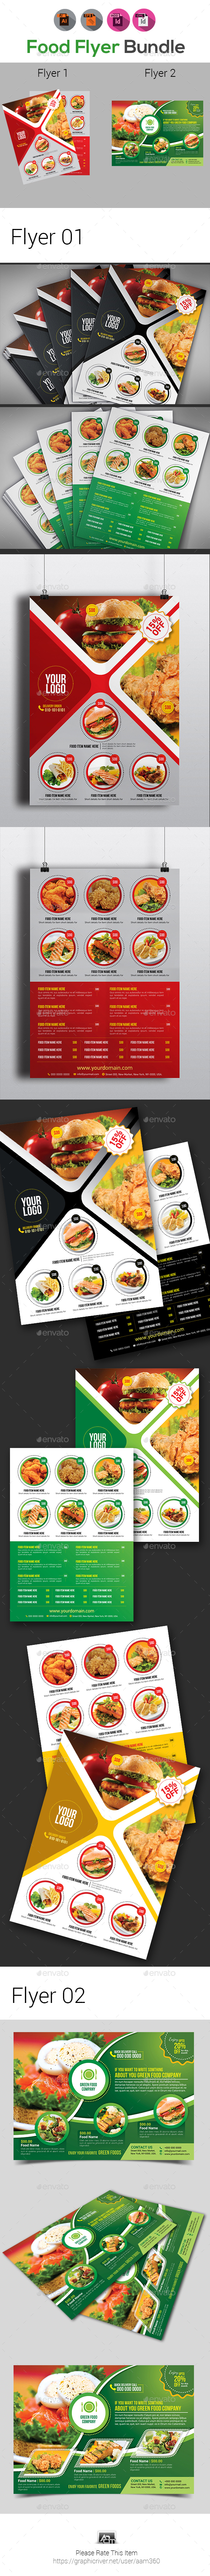 Food Menu or Food Flyer Bundle - Restaurant Flyers